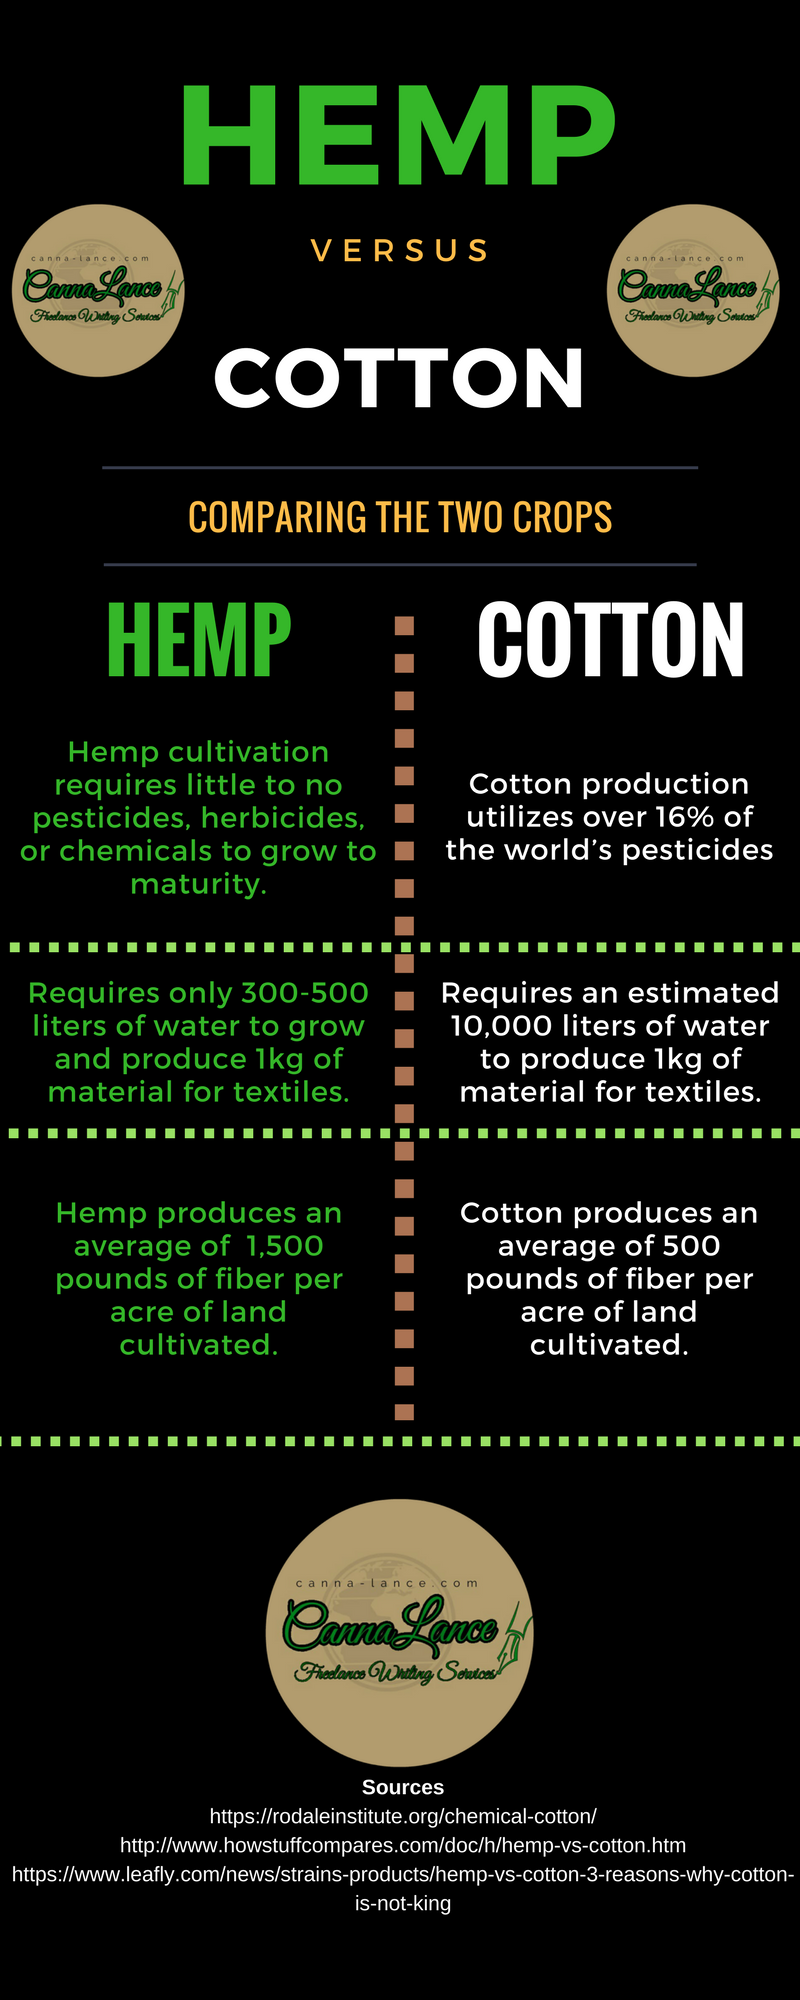 Hemp-vs-Cotton-Comparing-the-2-Crops-by-CannaLance (1)